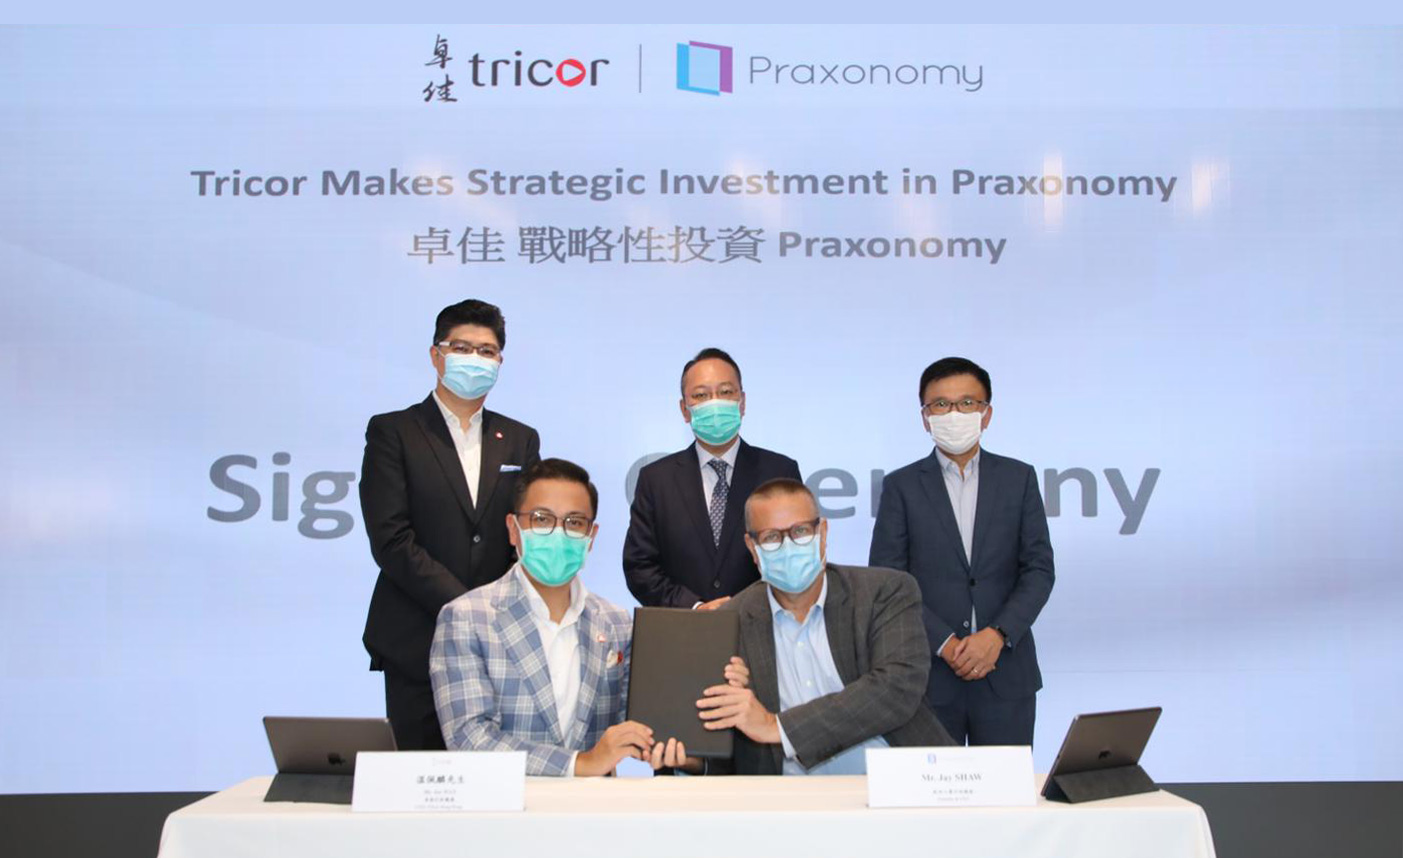 Tricor and Praxonomy Signing